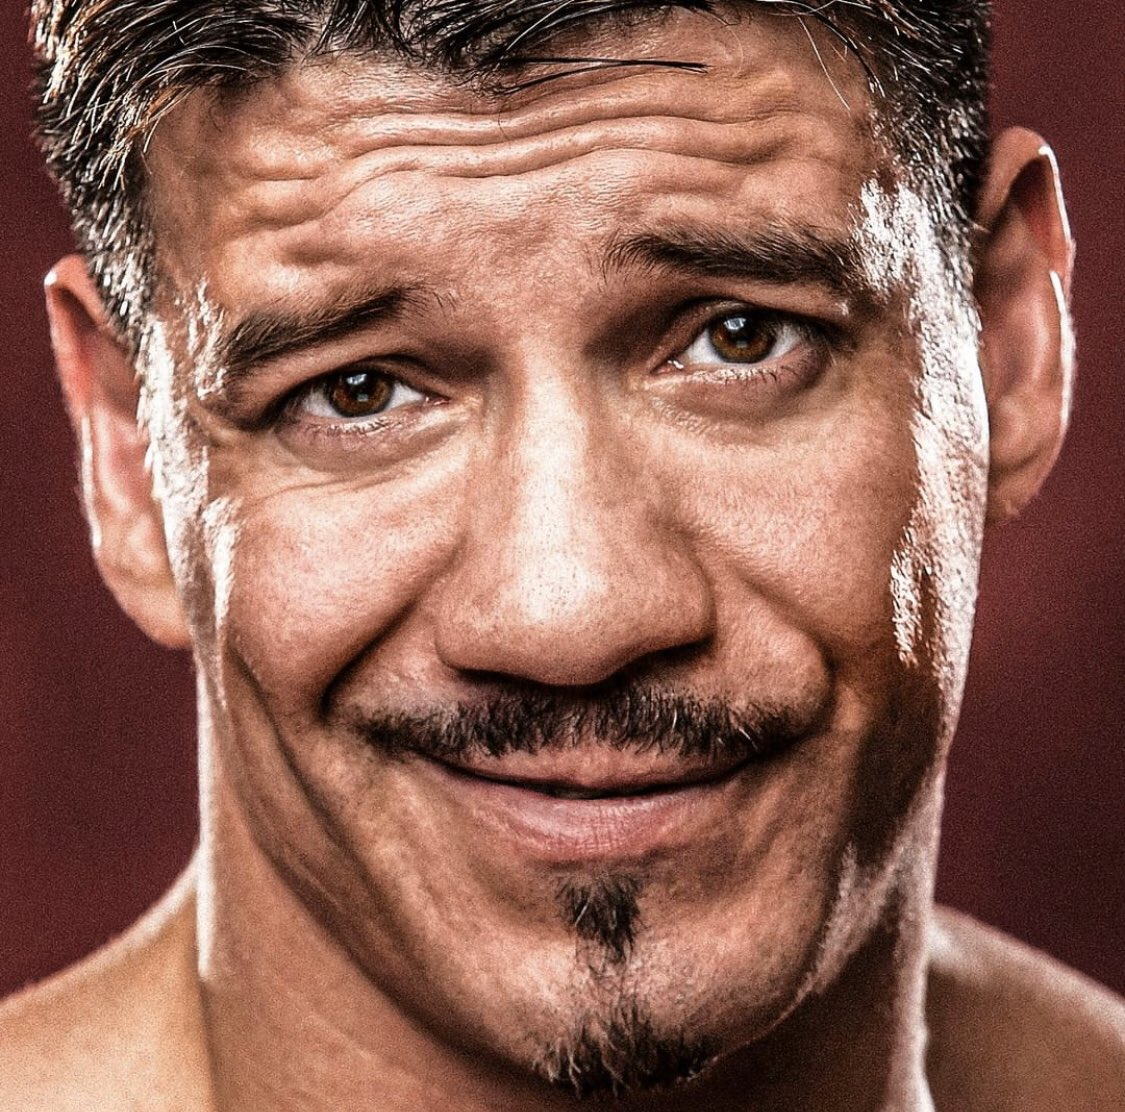 Happy birthday Eddie Guerrero! We miss you. !!!